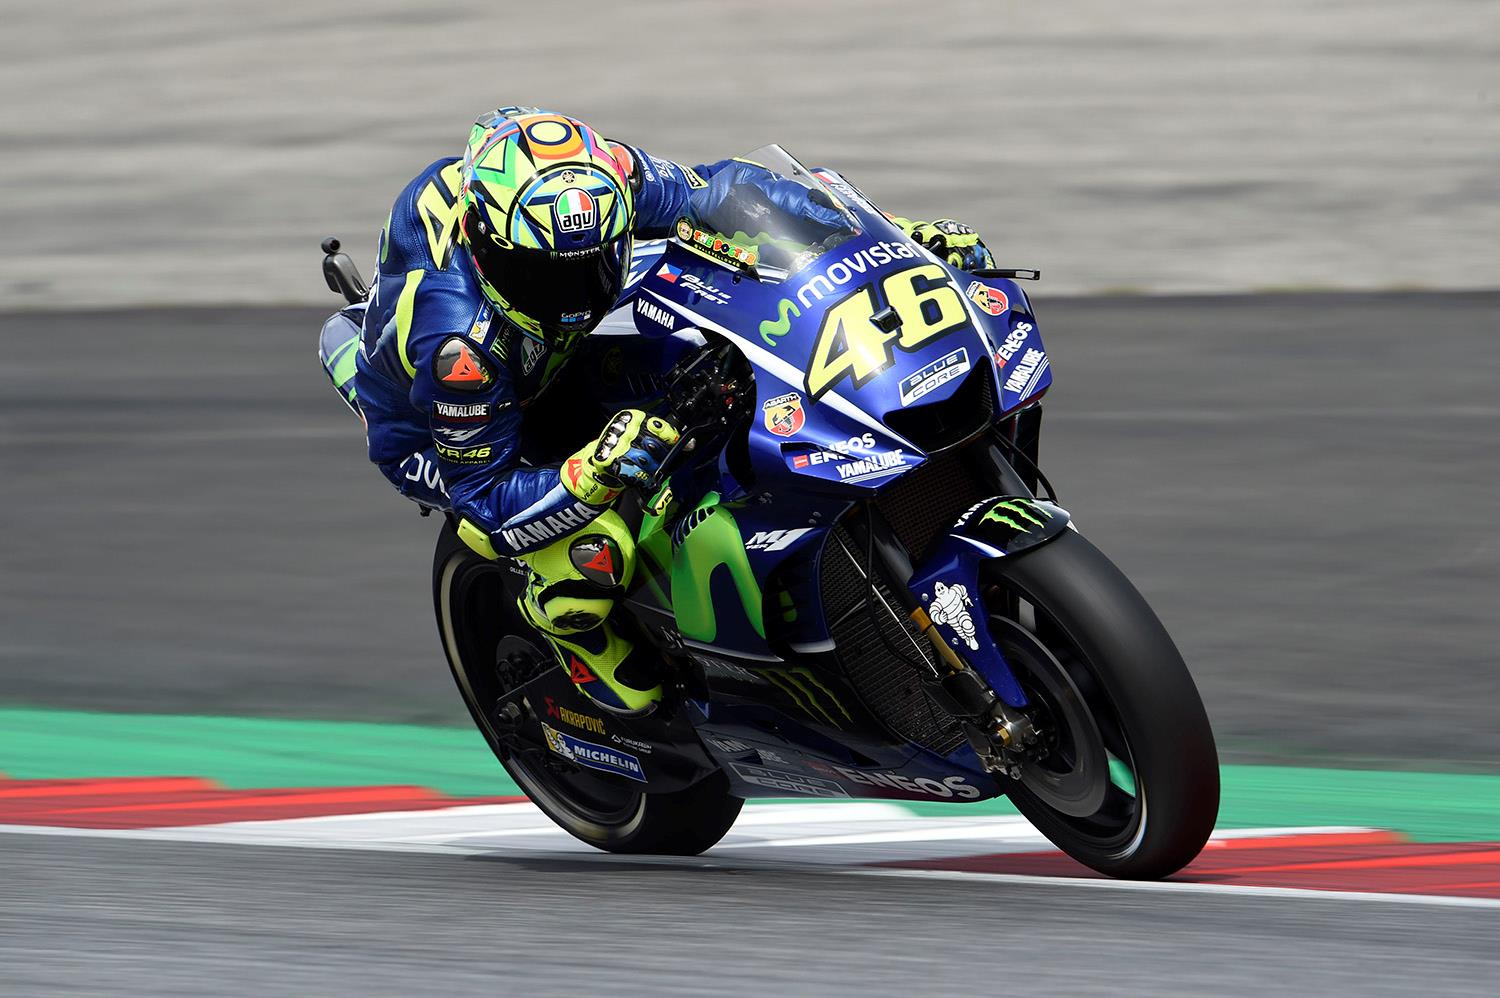 MotoGP: Rossi rides prototype 2018 bike at Misano test | MCN